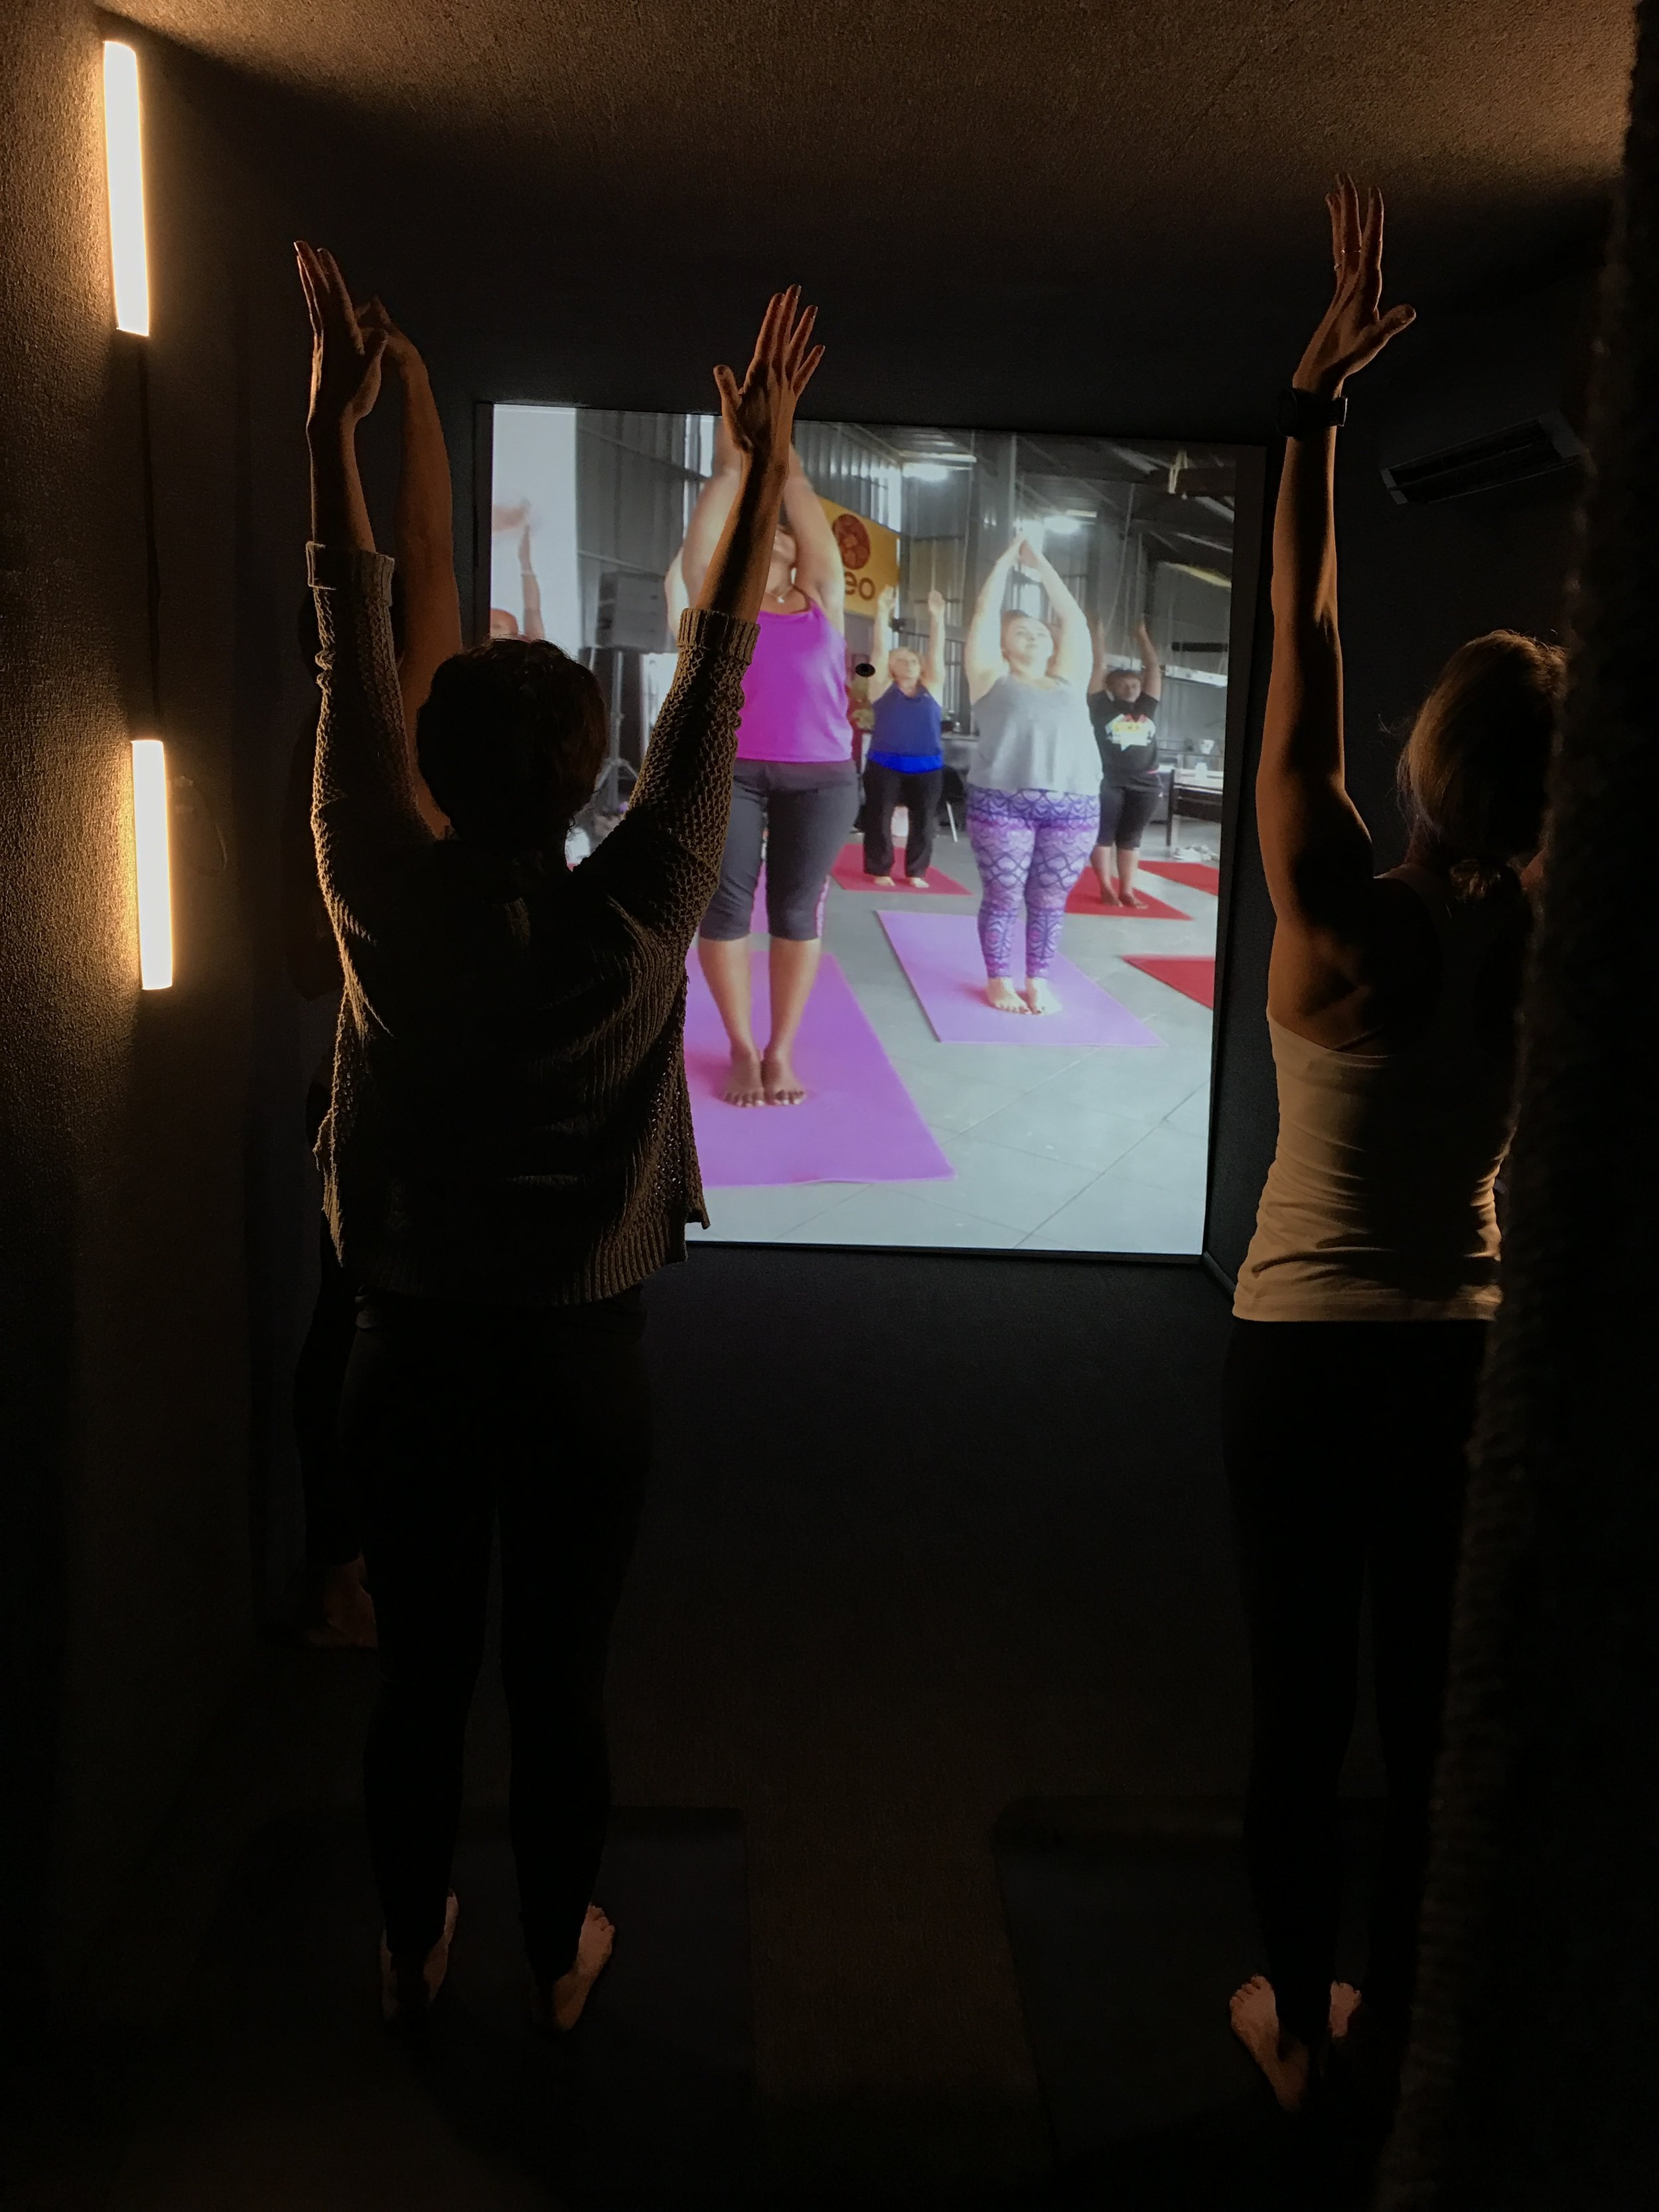 Portal yoga class between Kigali and Chicago